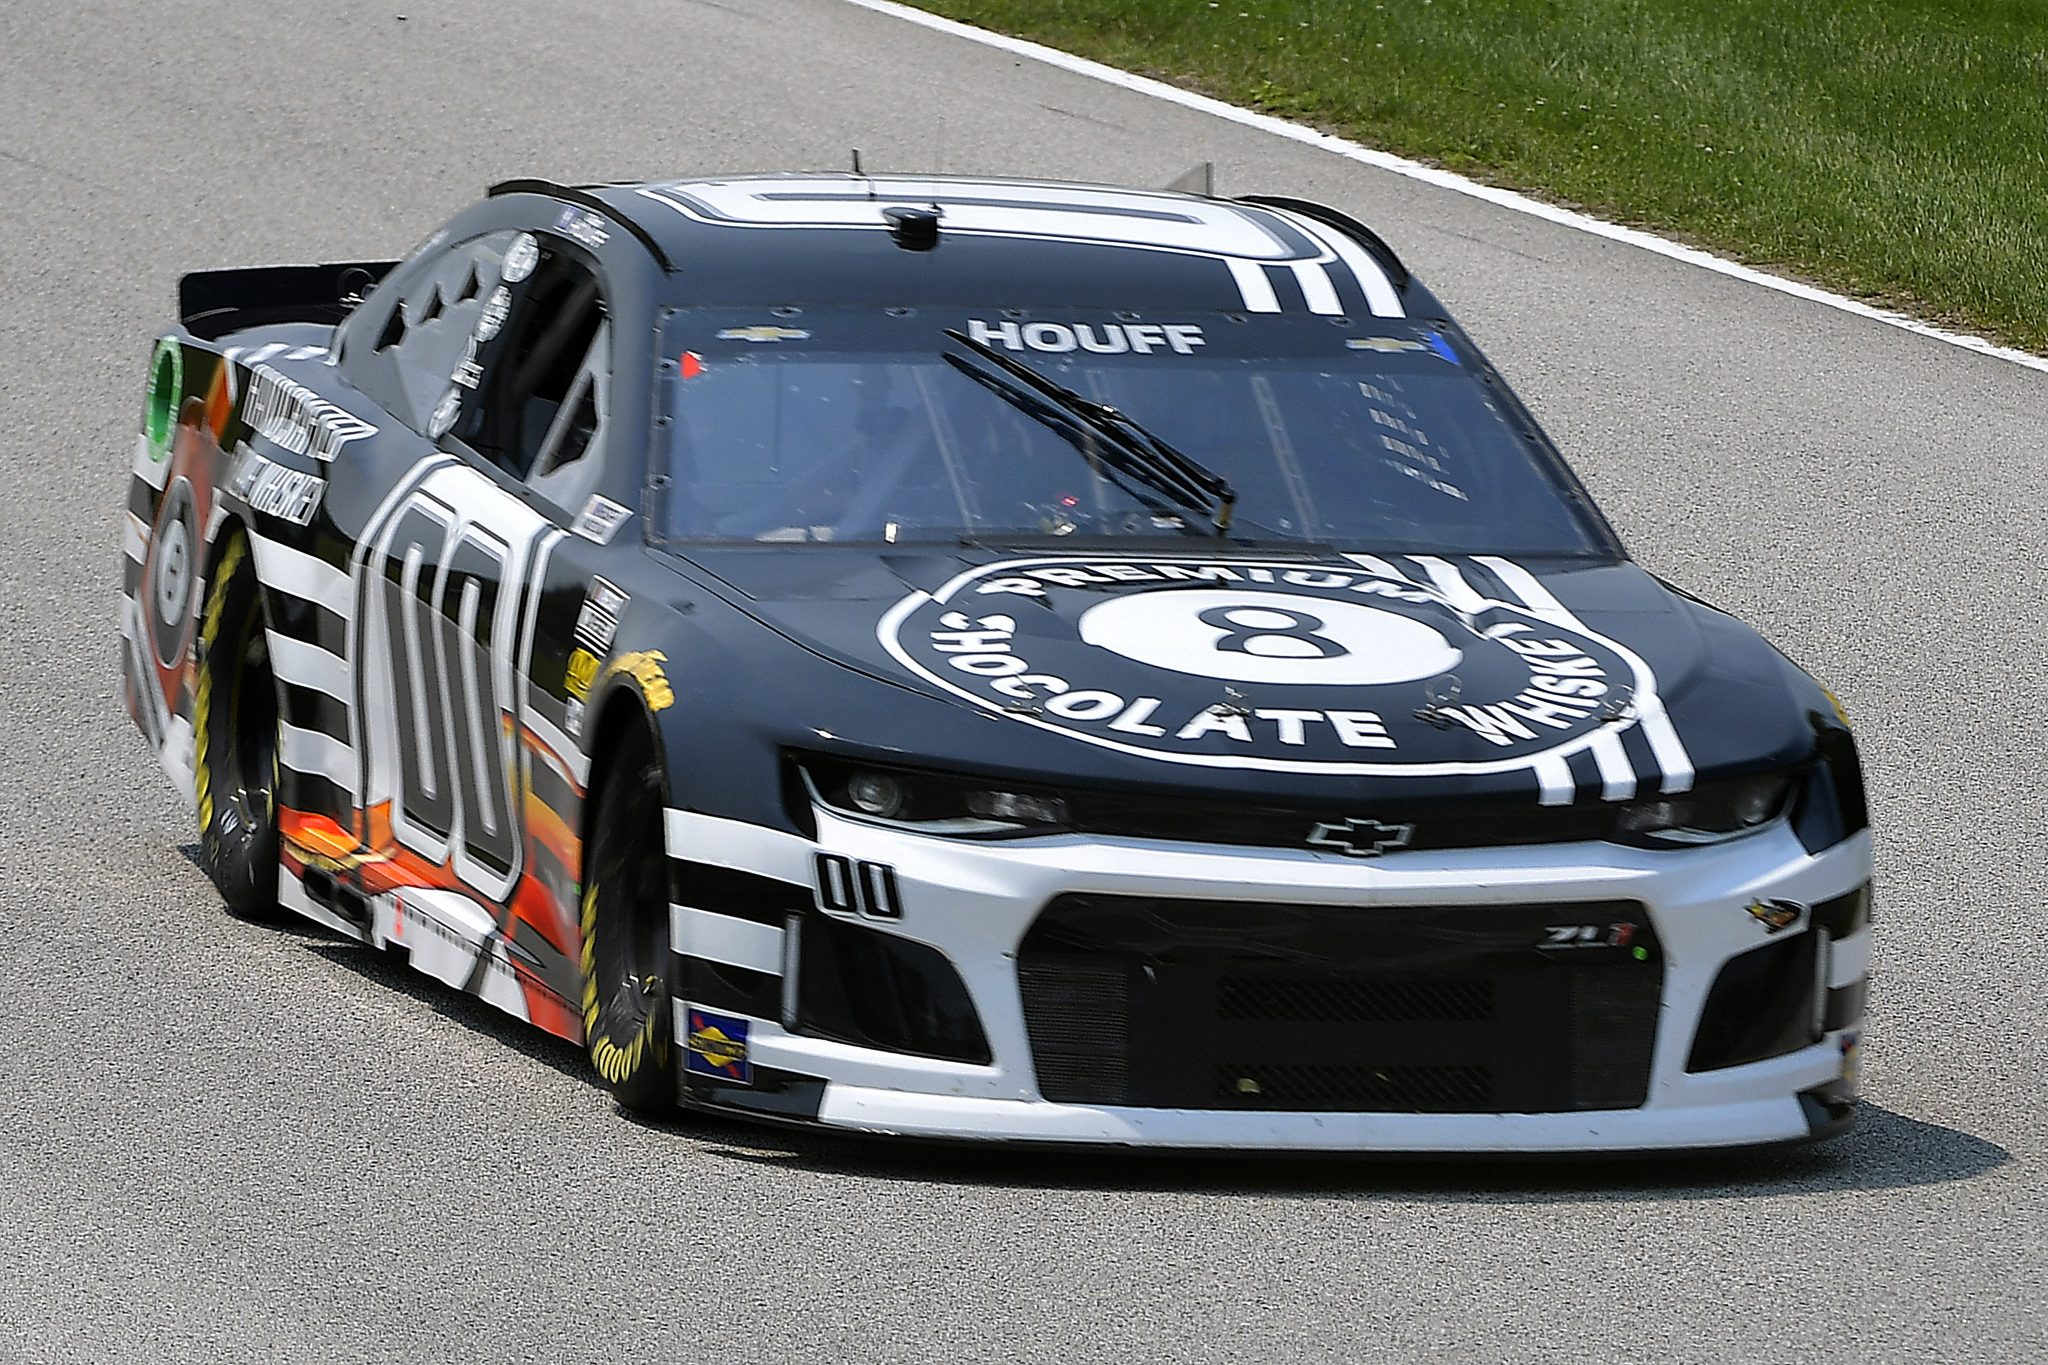 ELKHART LAKE, WISCONSIN - JULY 03: Quin Houff, driver of the #00 8 Ball Chocolate Whiskey Chevrolet, drives during practice for the NASCAR Cup Series Jockey Made in America 250 Presented by Kwik Trip at Road America on July 03, 2021 in Elkhart Lake, Wisconsin. (Photo by Logan Riely/Getty Images)   Getty Images